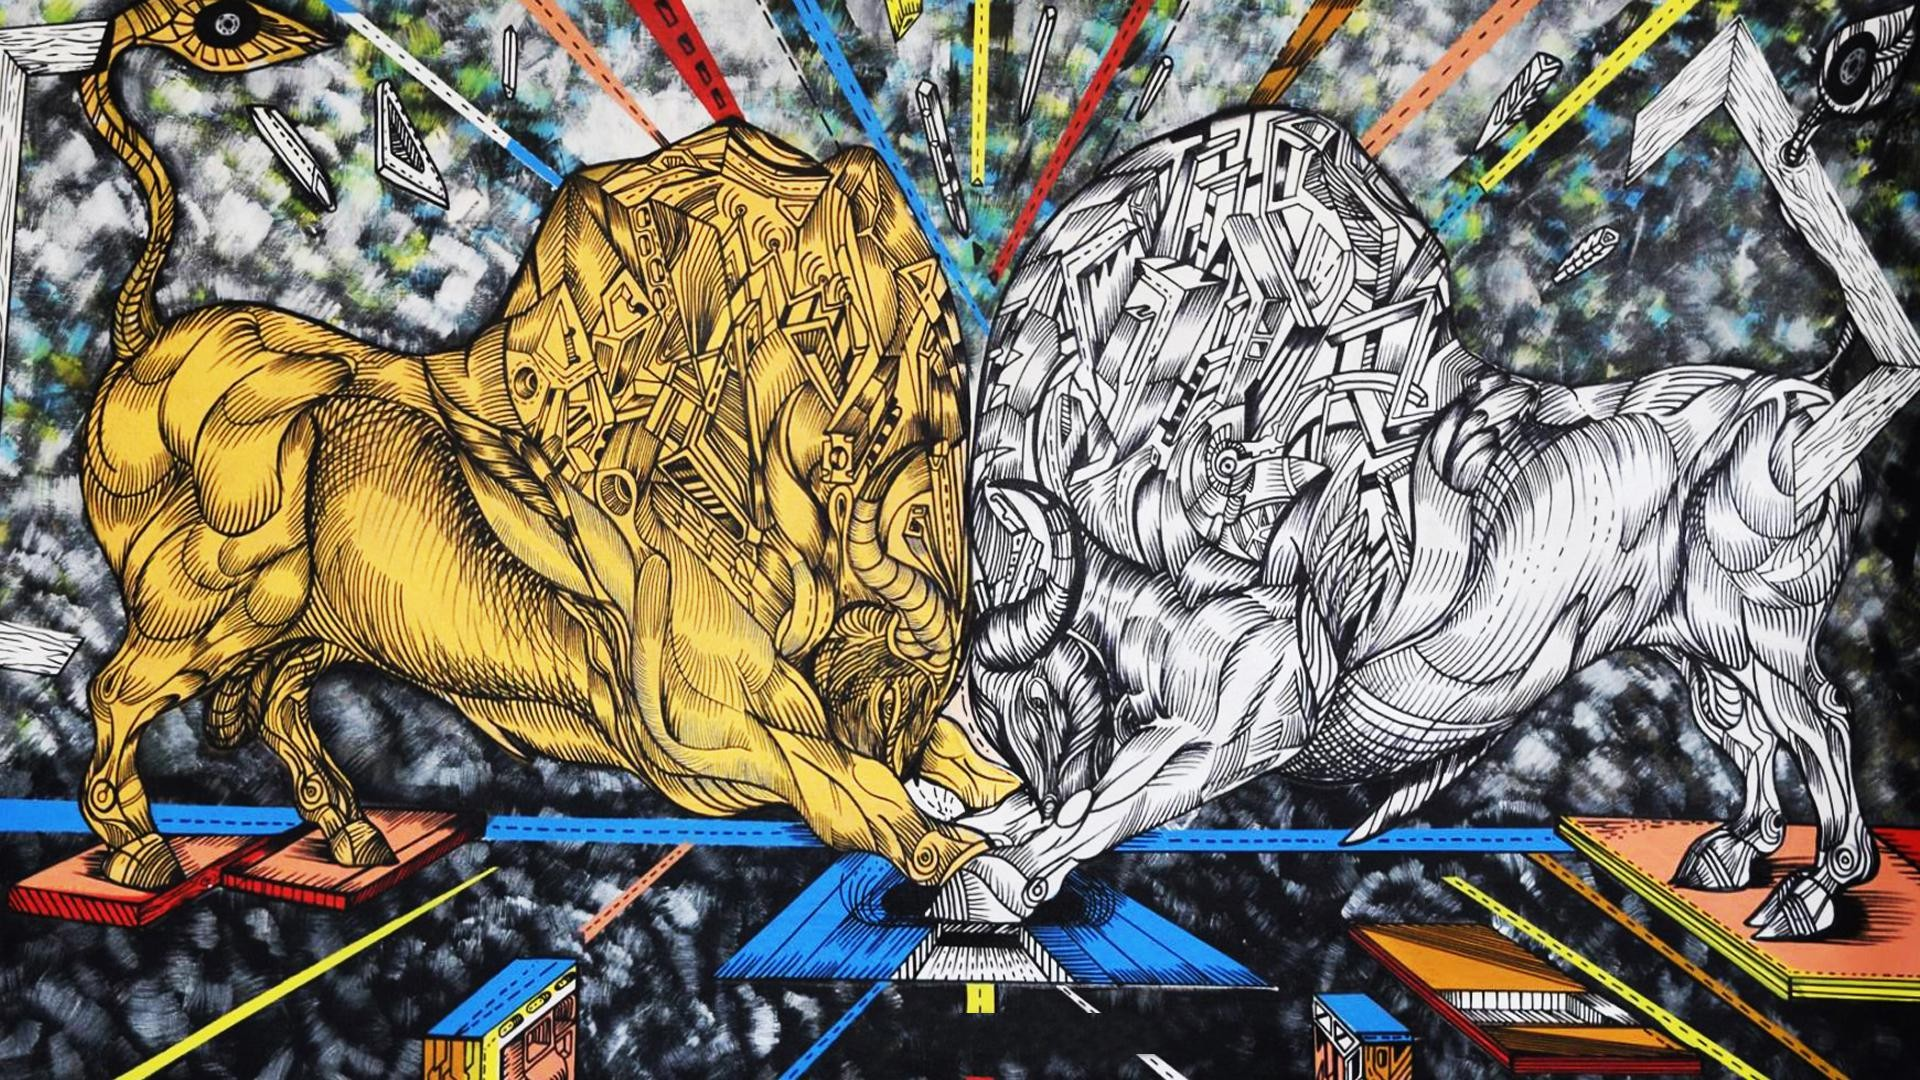 Gold versus Silver, acrylic on canvas